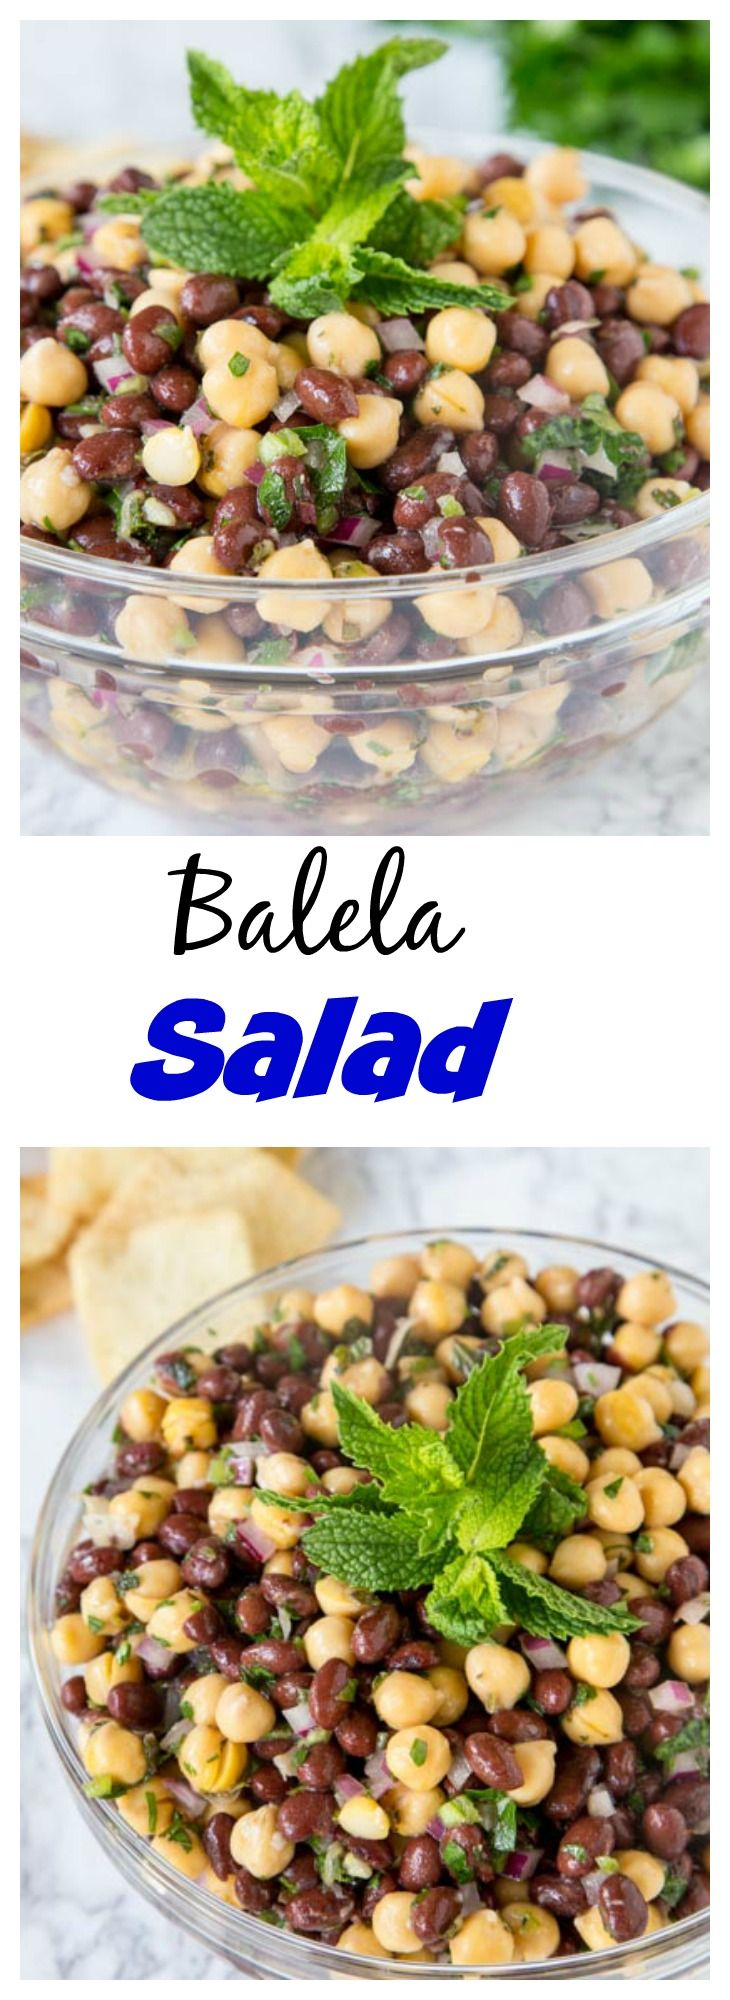 Balela Salad (Mediterranean Chickpea Salad) – a Mediterranean salad made with chickpeas, black beans, lots of fresh herbs and lemon juice. Super healthy and great as a dip or side dish.